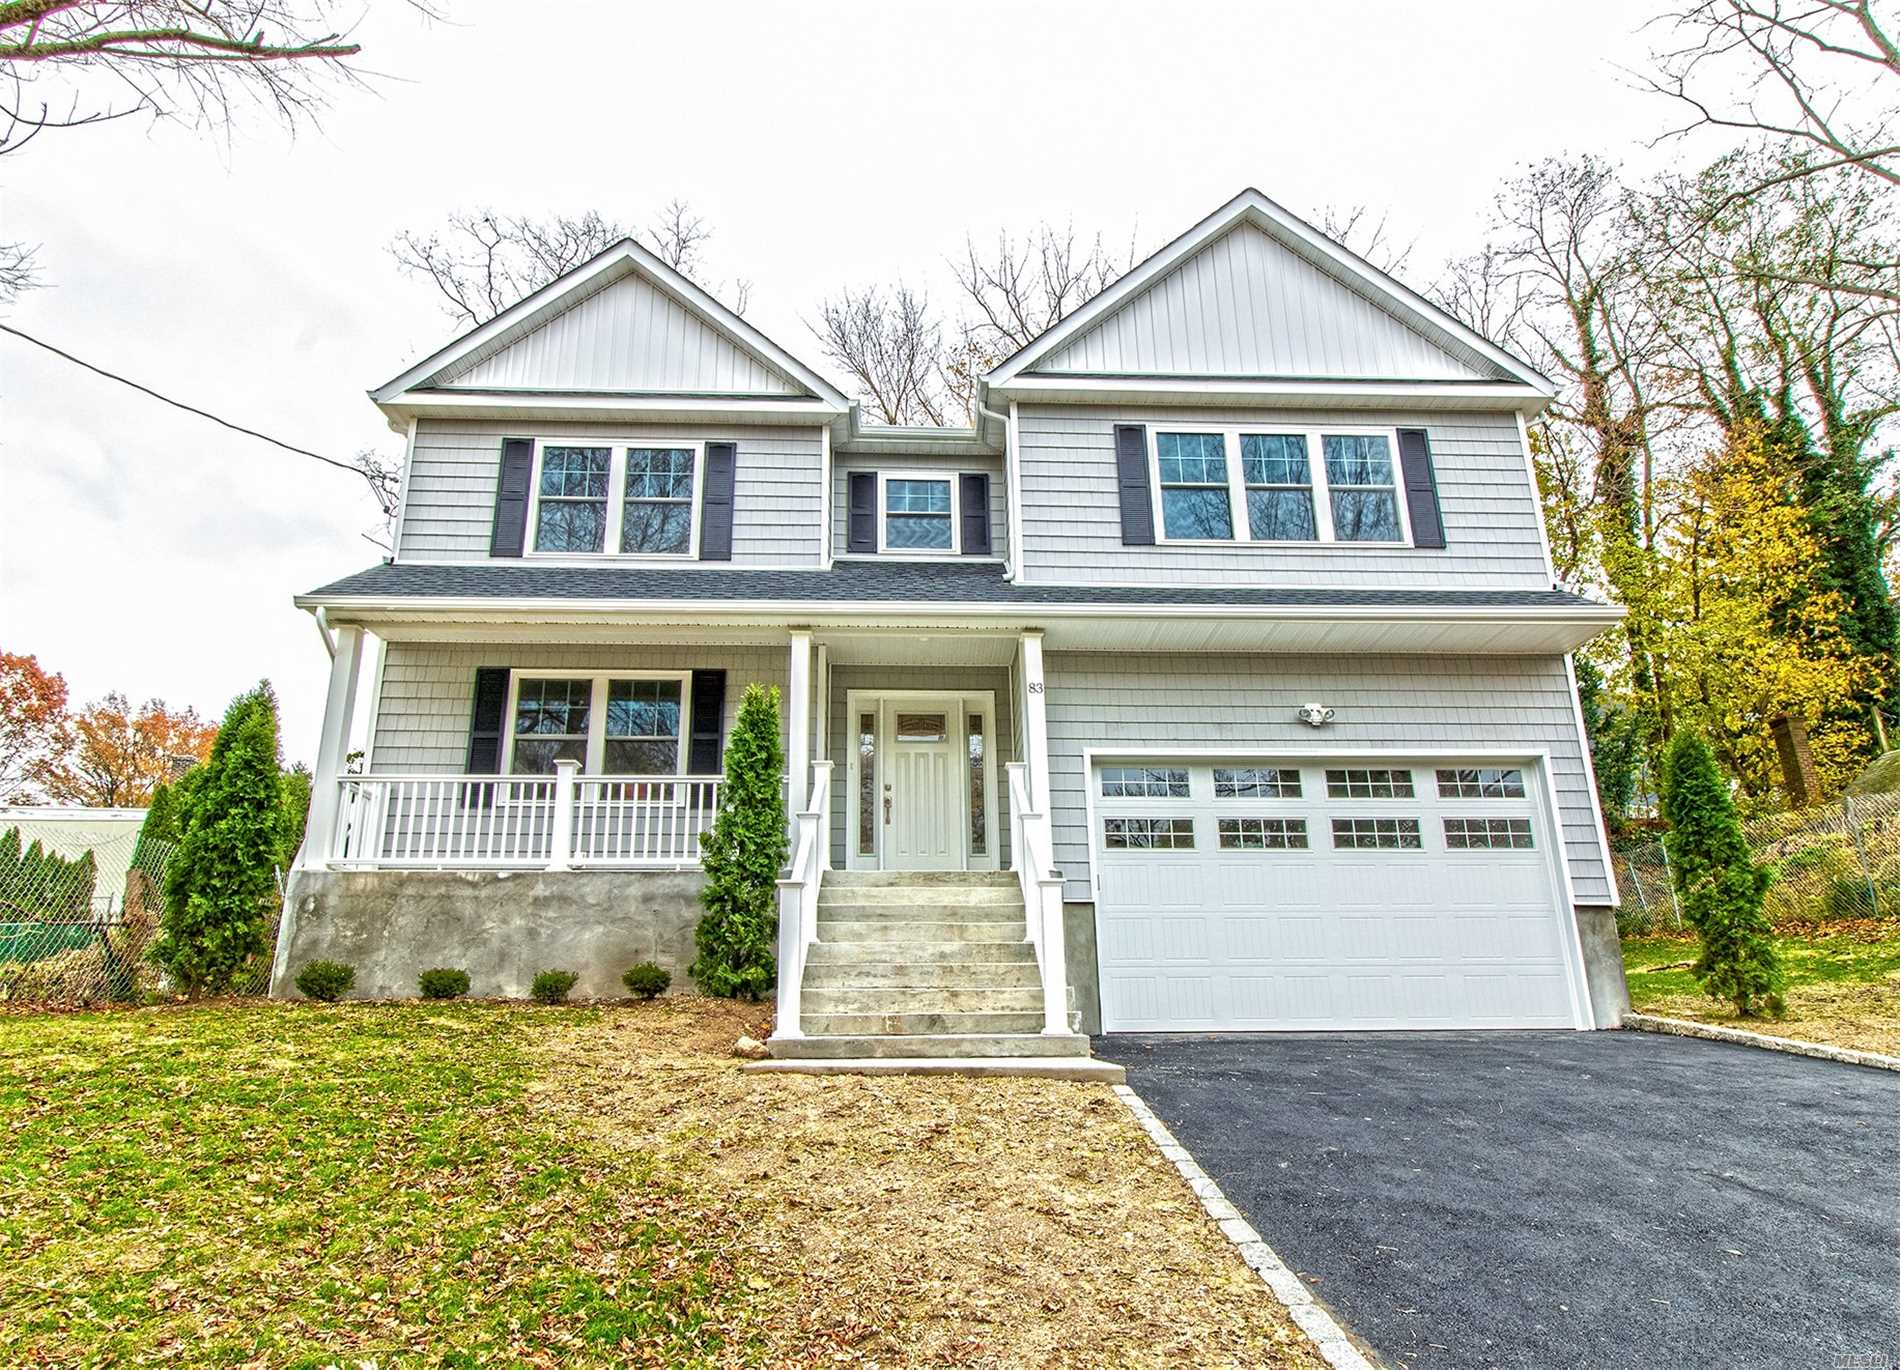 New Construction In The Landing Area Of Glen Cove. This Stunning Home Features 5 Bedrooms, 2.5 Baths, Wood Floors Throughout, And All The Best Of High End Finishings. Custom Moldings. High Ceilings. This Homes Basement Can Be Customized To Fit New Owners Dreams.